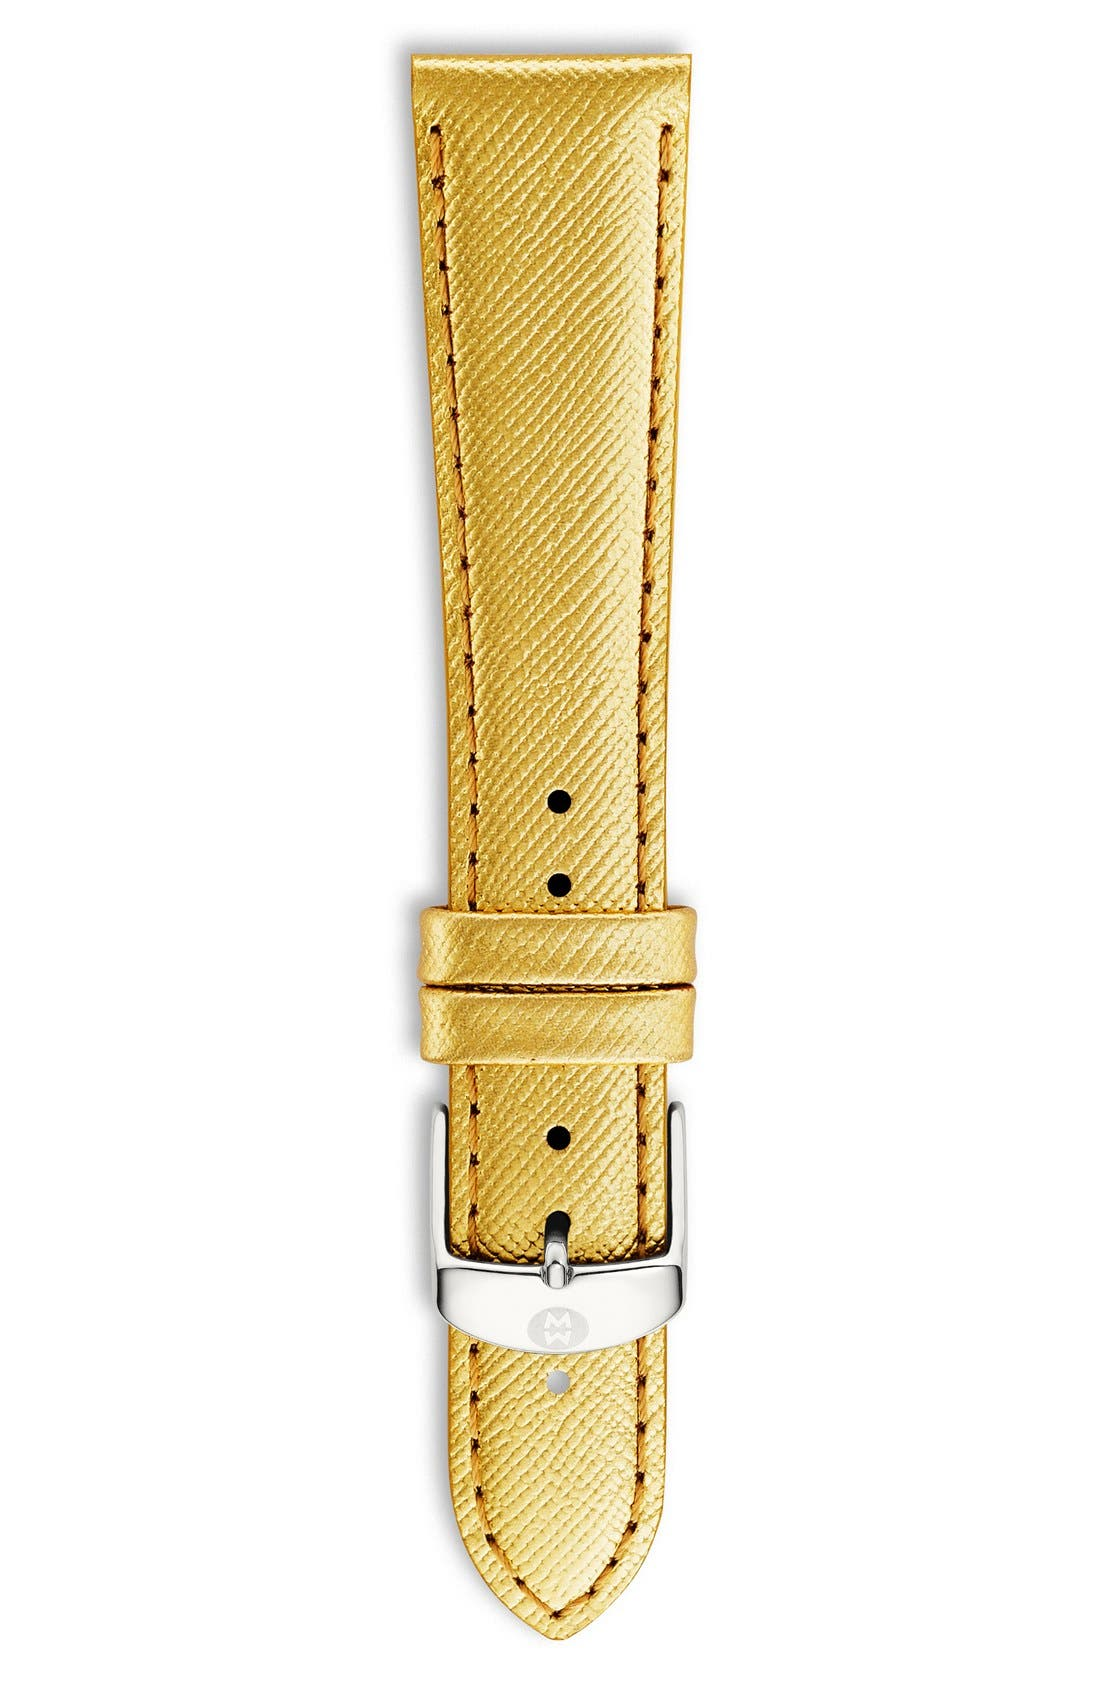 18mm Metallic Leather Watch Strap,                             Main thumbnail 1, color,                             710